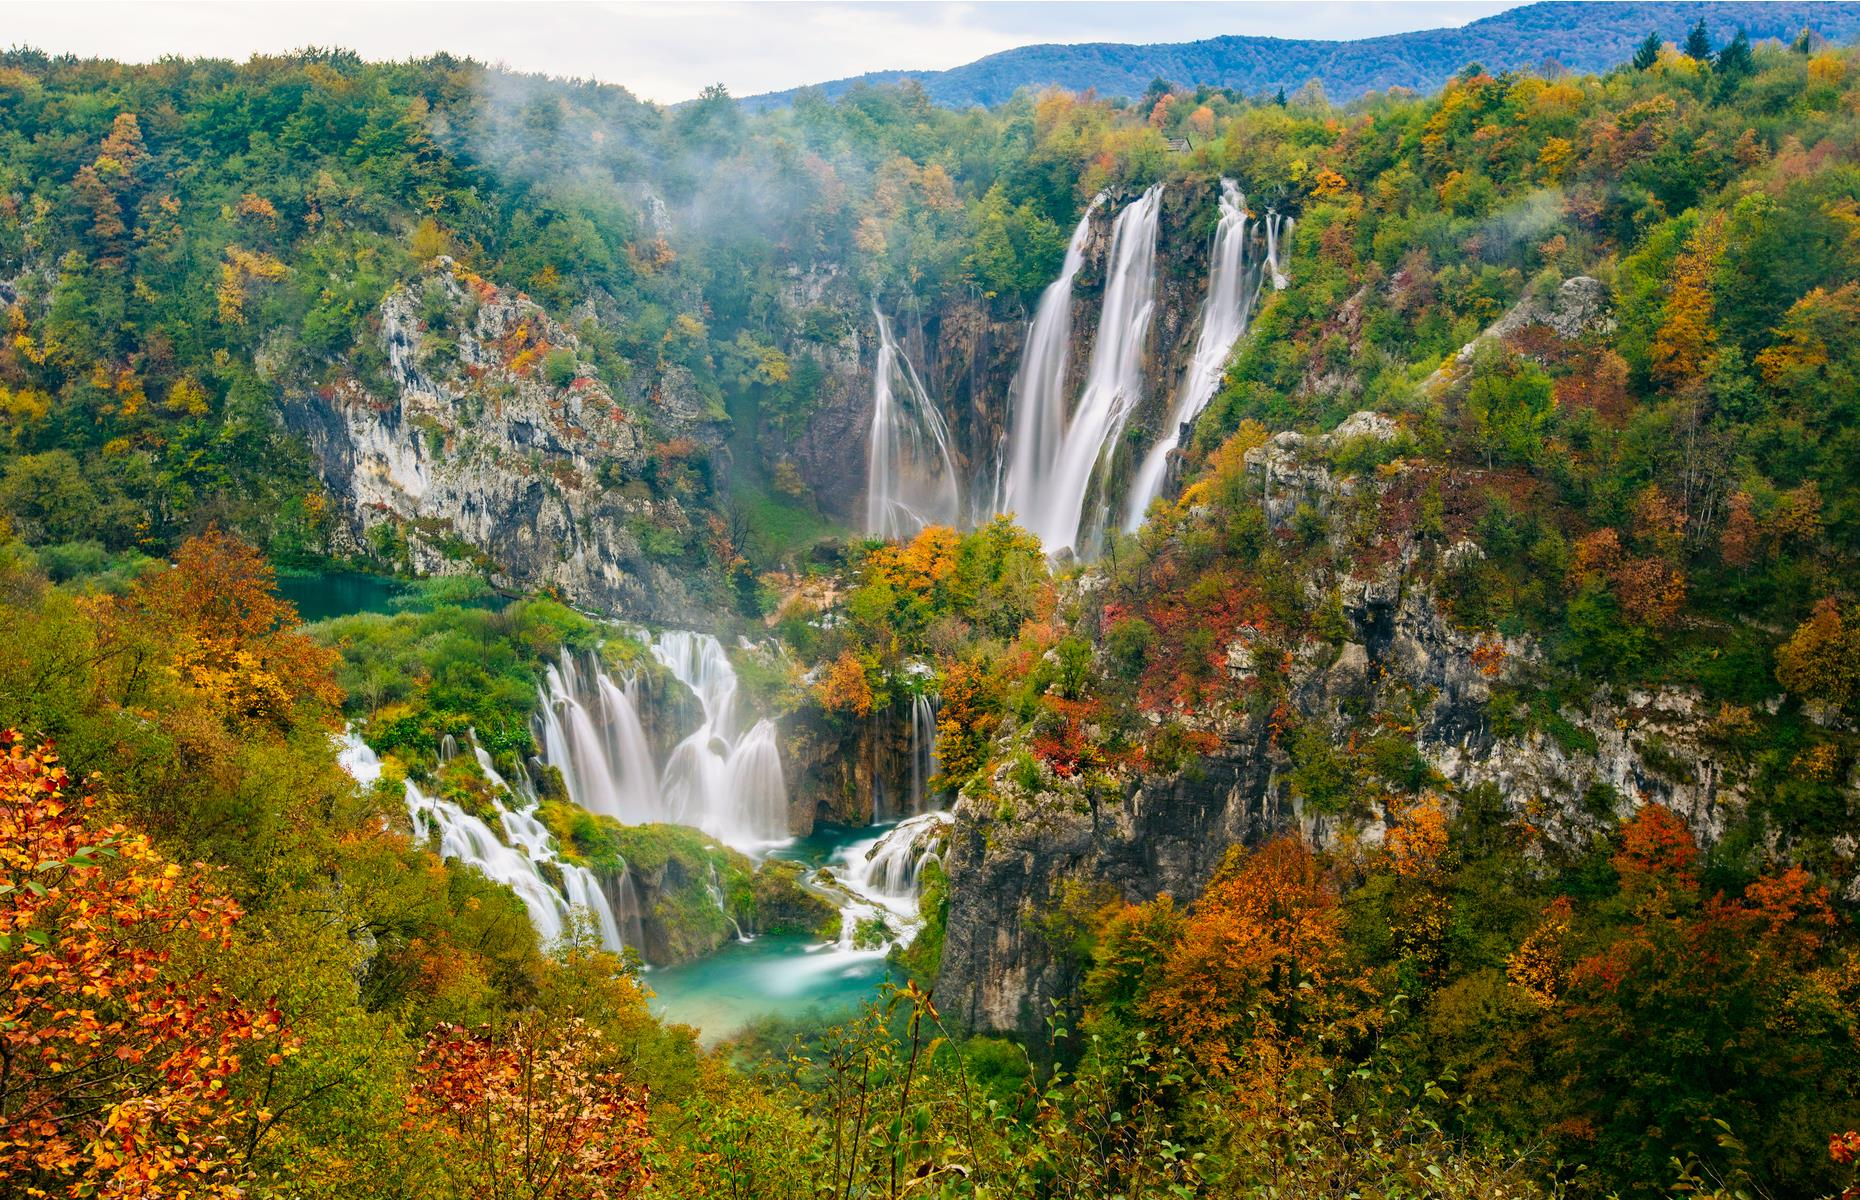 Slide 14 of 31: Covering almost 115 square miles (298sq km), Plitvice Lakes National Park is found near the Bosnia and Herzegovina border, two hours south by car from Zagreb. The park, founded in 1949, is famous for its collection of 16 crystal clear, color-changing lakes – they morph between shades of green and blue due to their high mineral content – plus over 90 waterfalls. See more of the world's most beautiful waterfalls here.